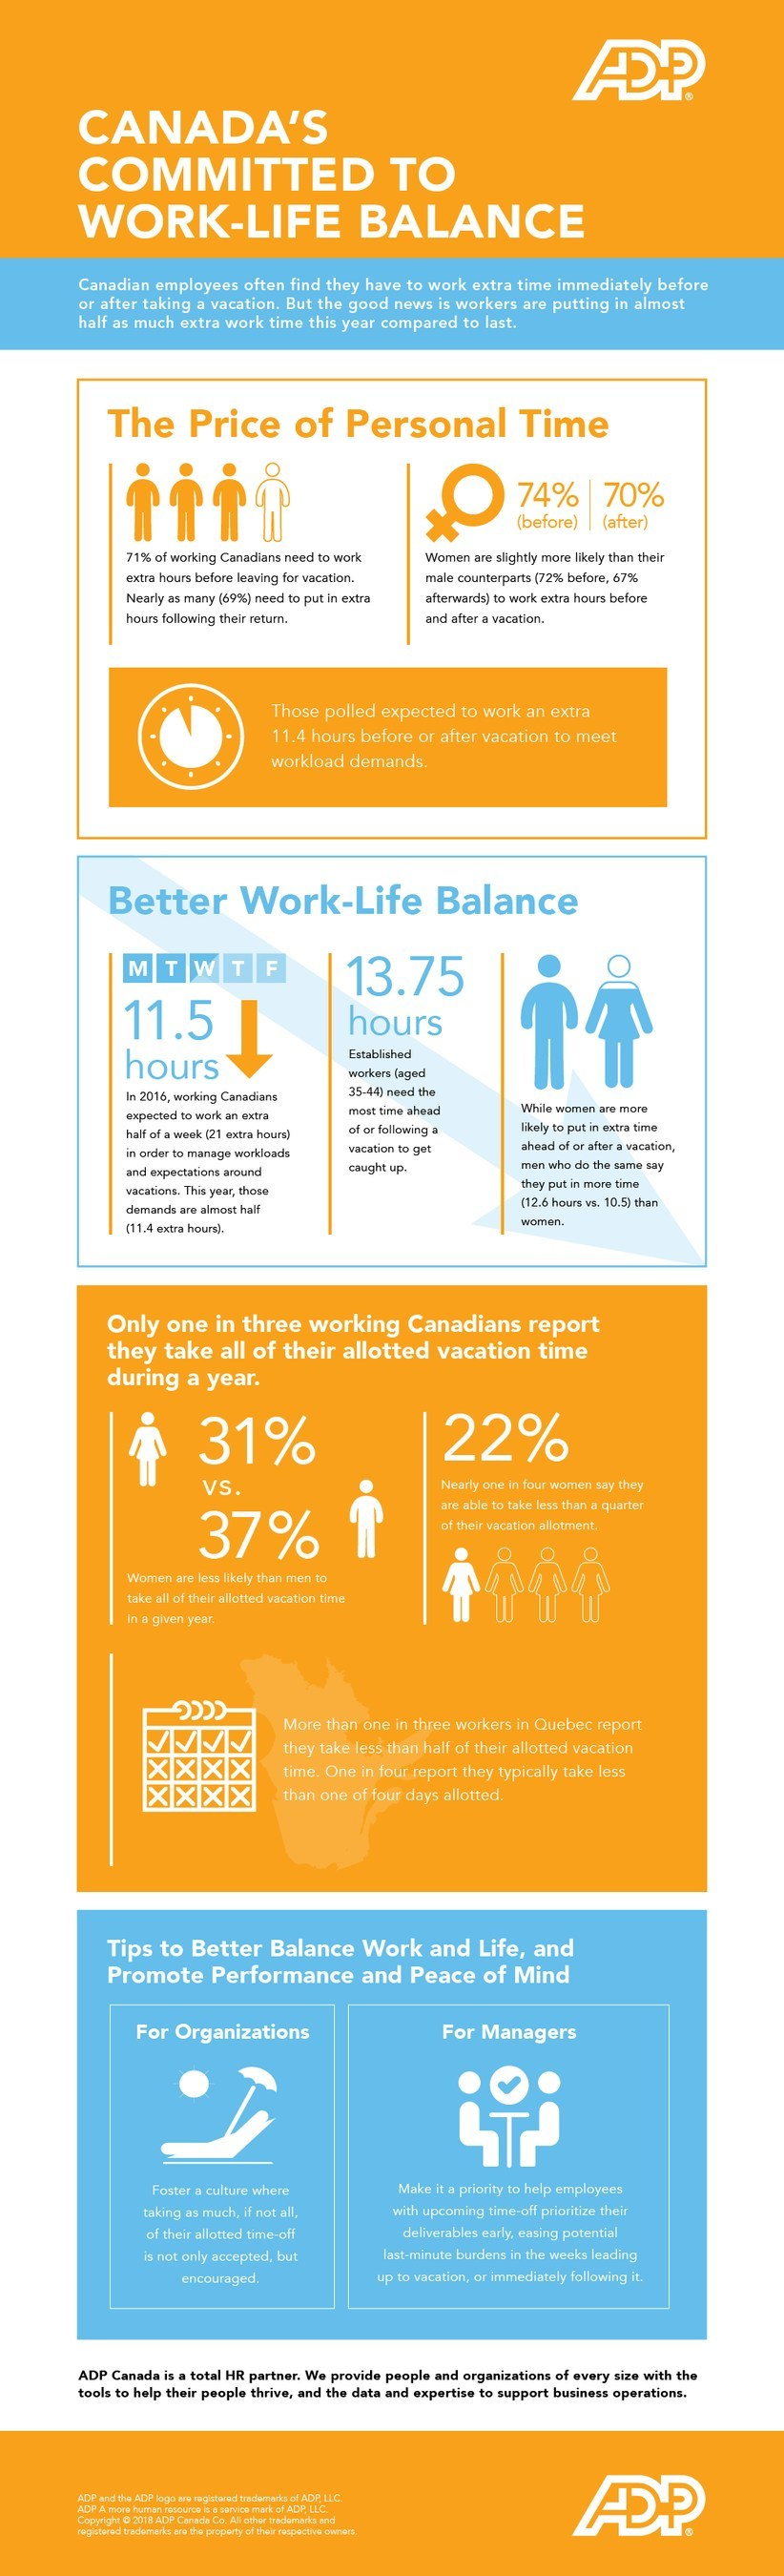 New Year's Resolution? Canada's committed to work-life balance (CNW Group/ADP Canada)